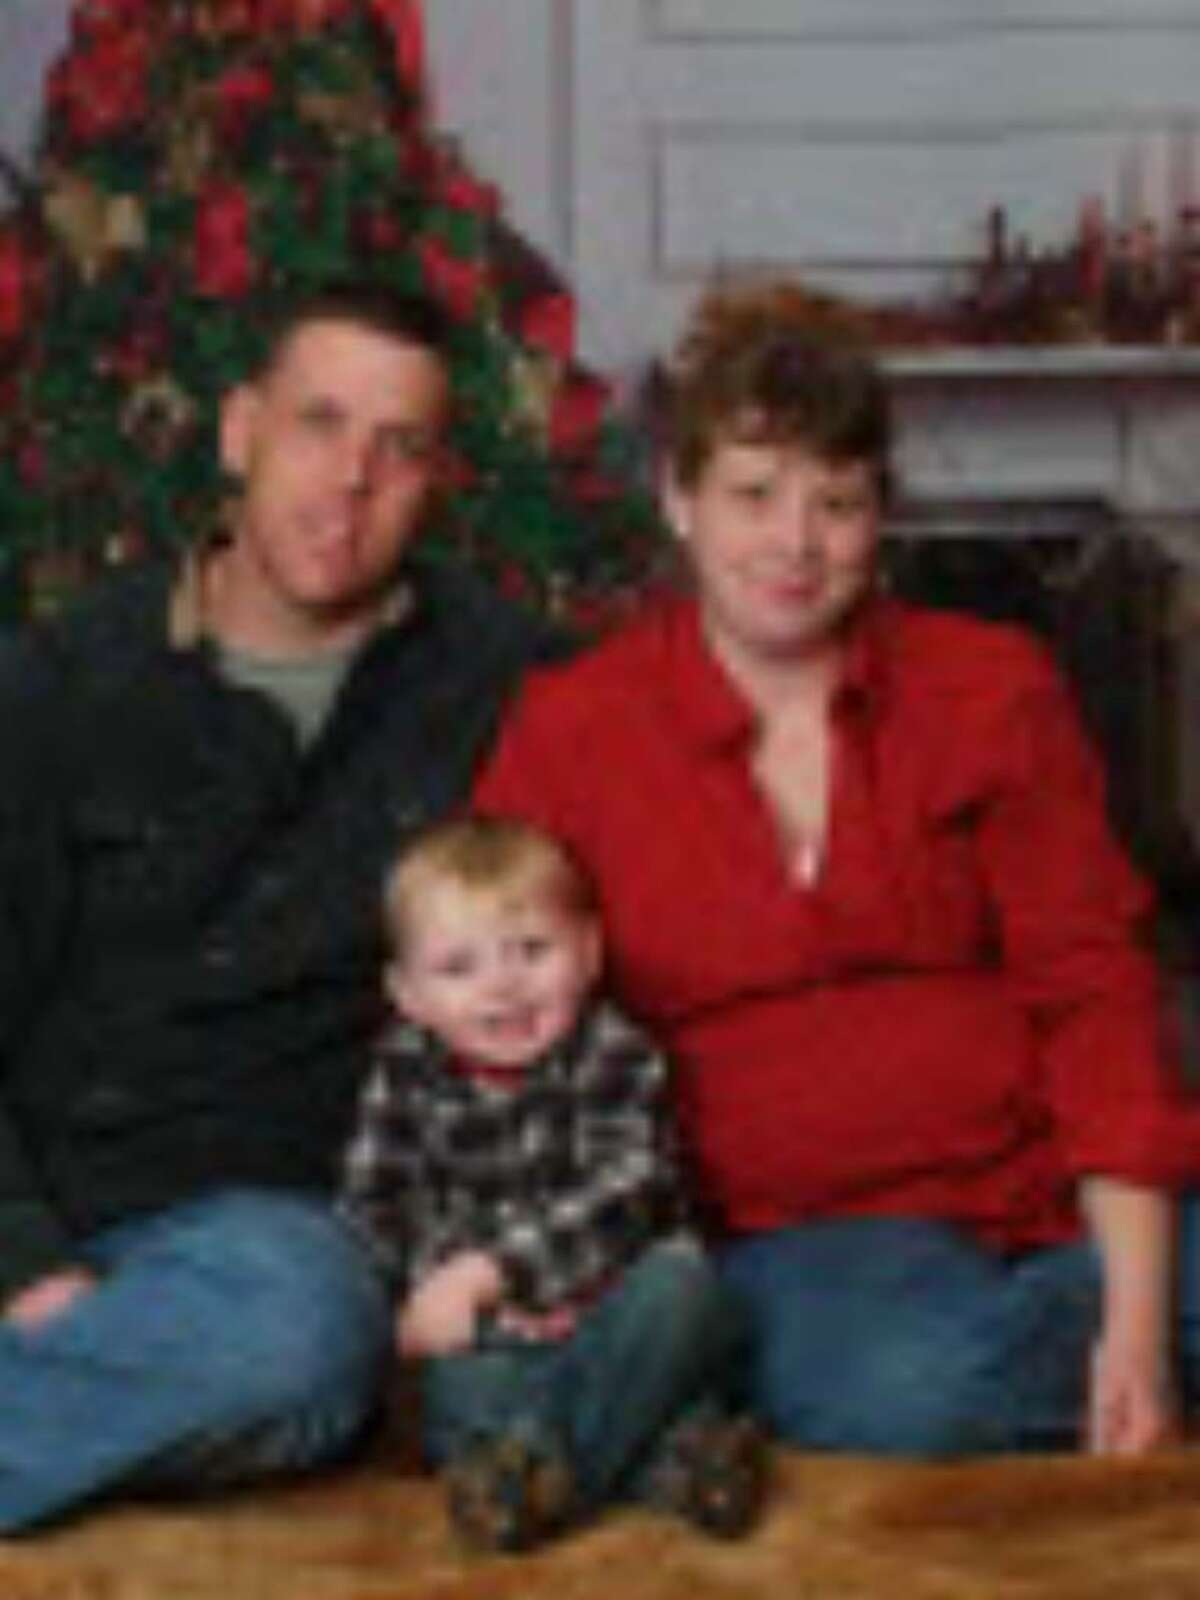 Jason Rivenburg, 35, of Fultonham, Schoharie County, is shown with his wife, Hope, and son Joshua in this family photo. Jason Rivenburg, a trucker, was shot to death in March in South Carolina. (Photos courtesy Rivenburg Family)